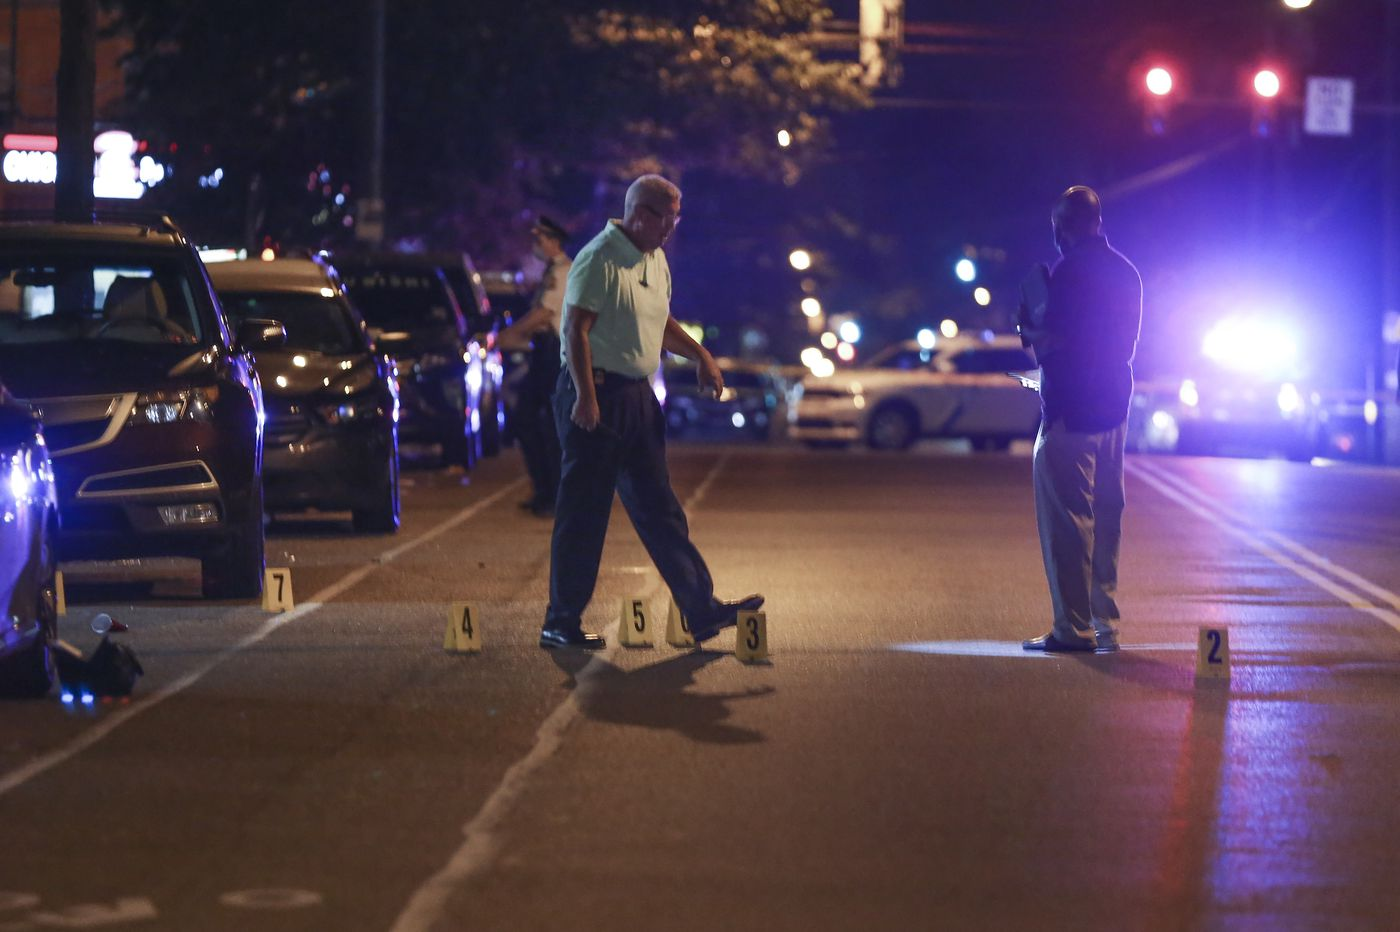 Philly shooting leaves 6 people wounded, including 3 in critical condition